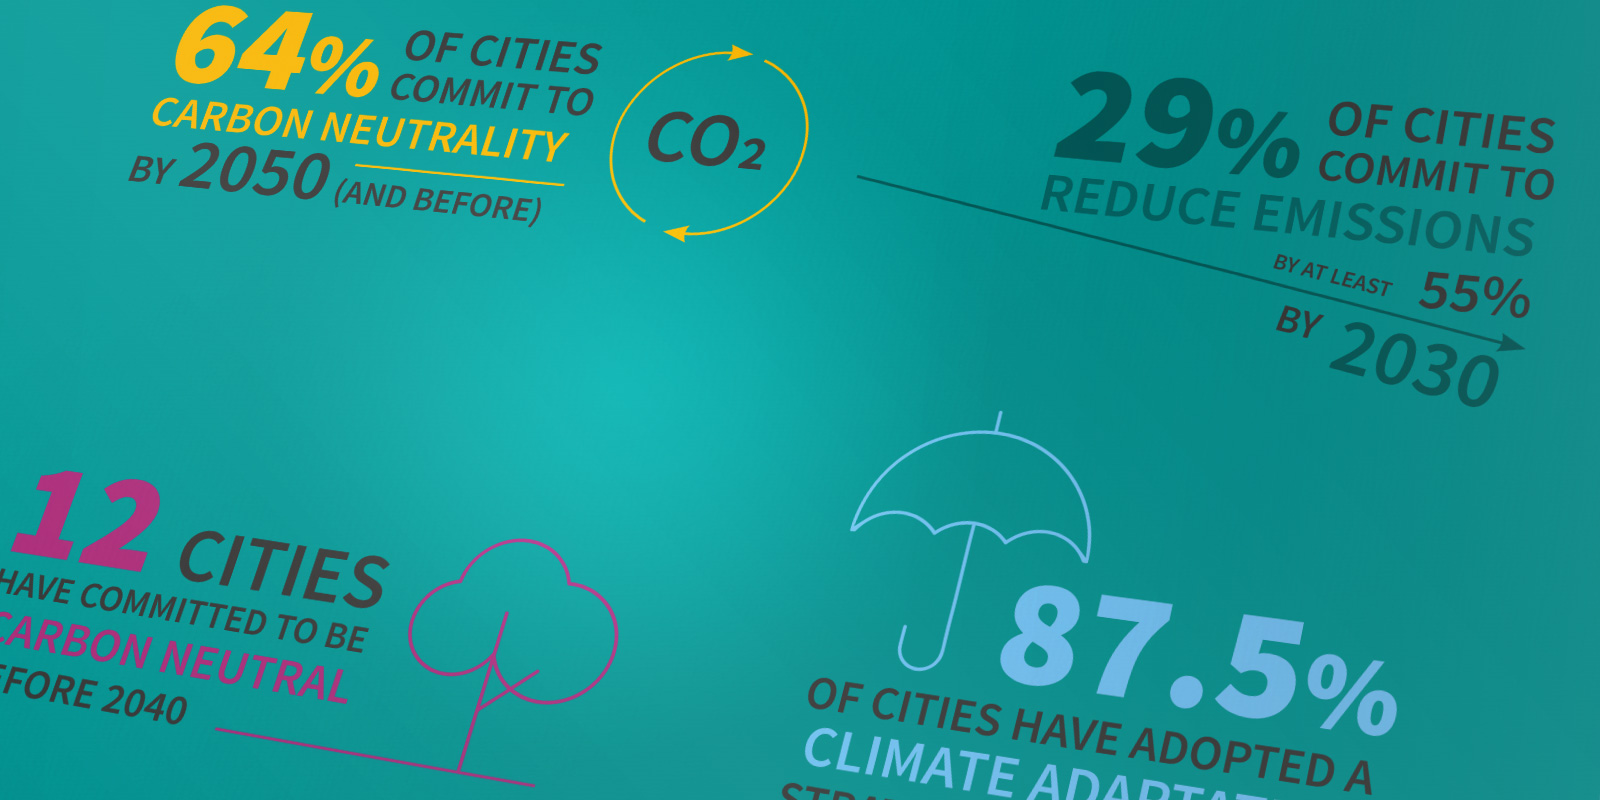 Cities leading the way on climate action